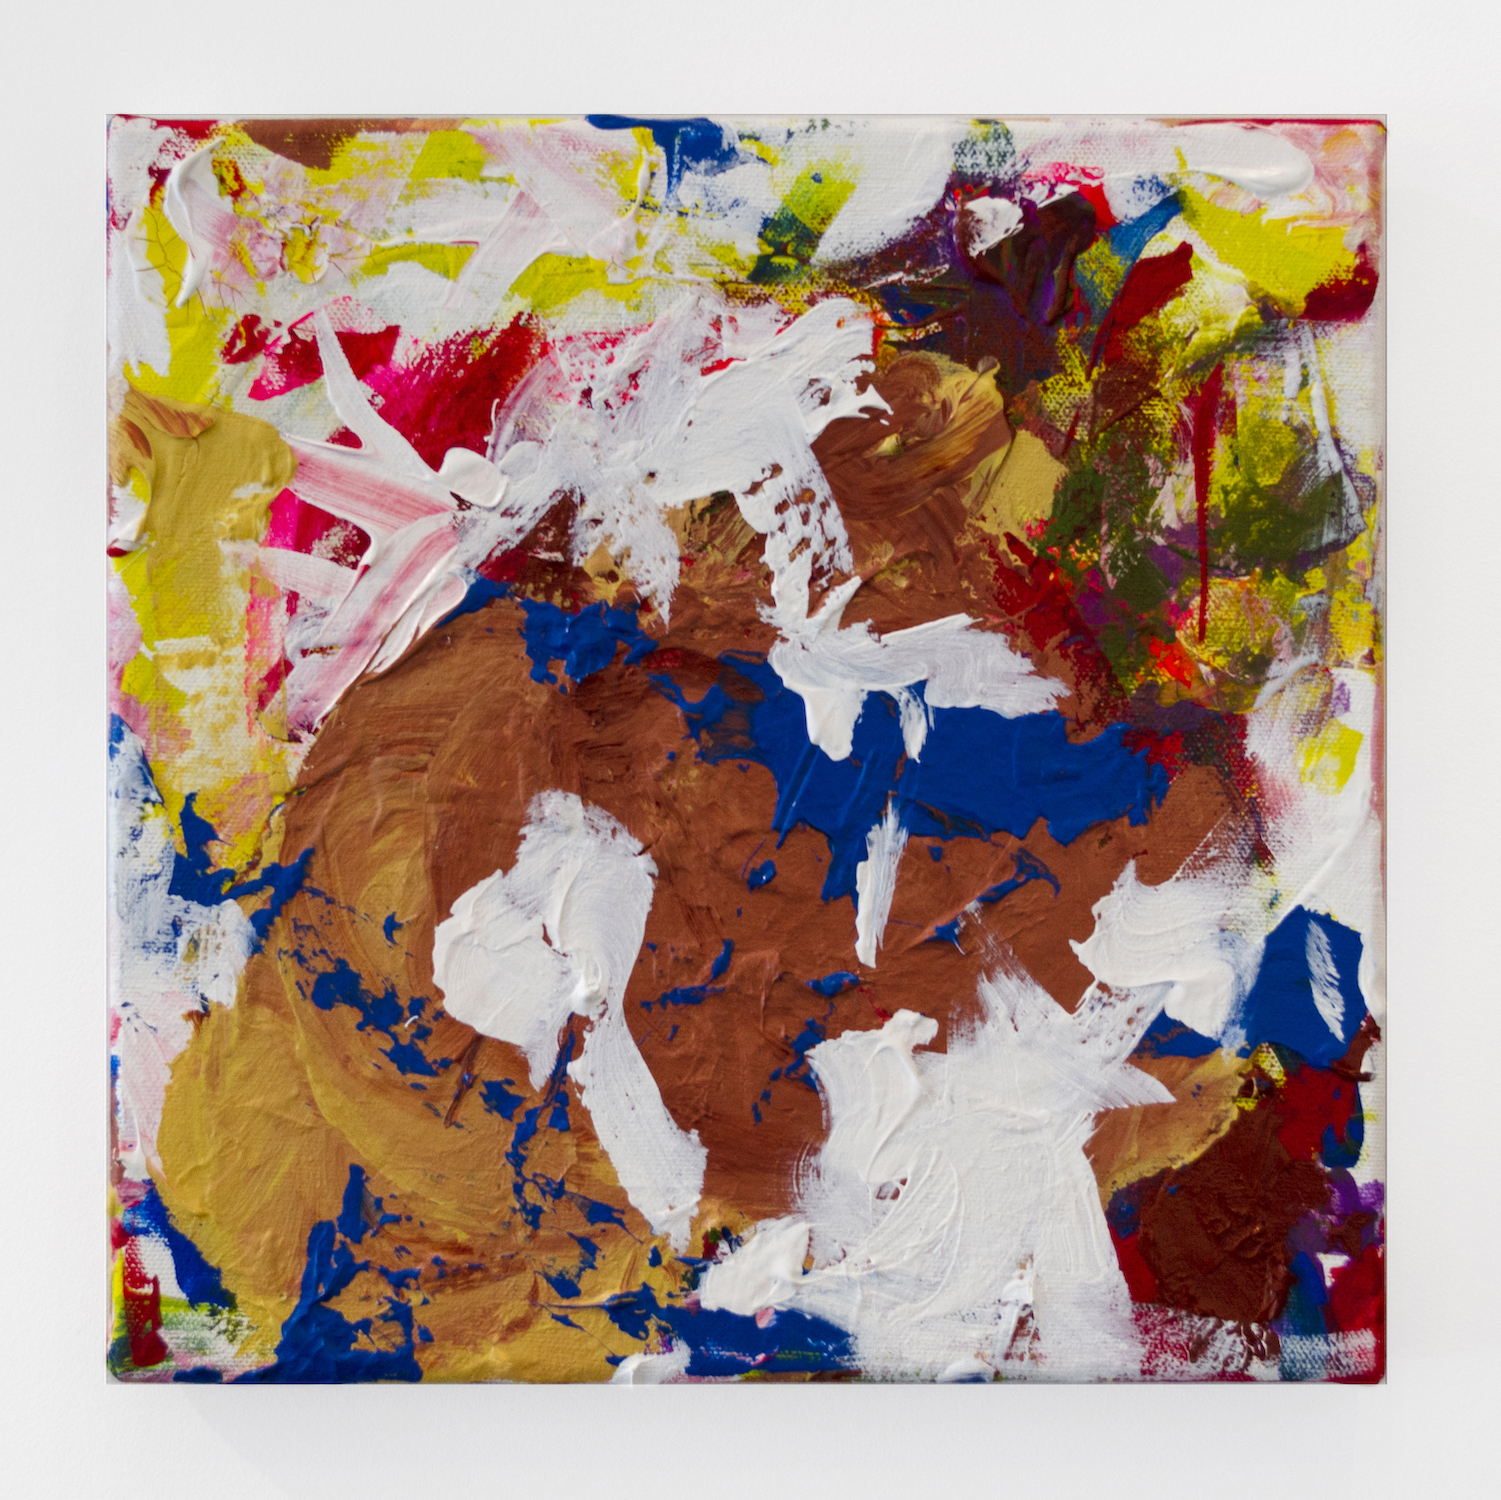 Dolores Bailey,  Splatter , 2016, Oil on canvas, 10 x 10 inches (25.4 x 25.4 cm)